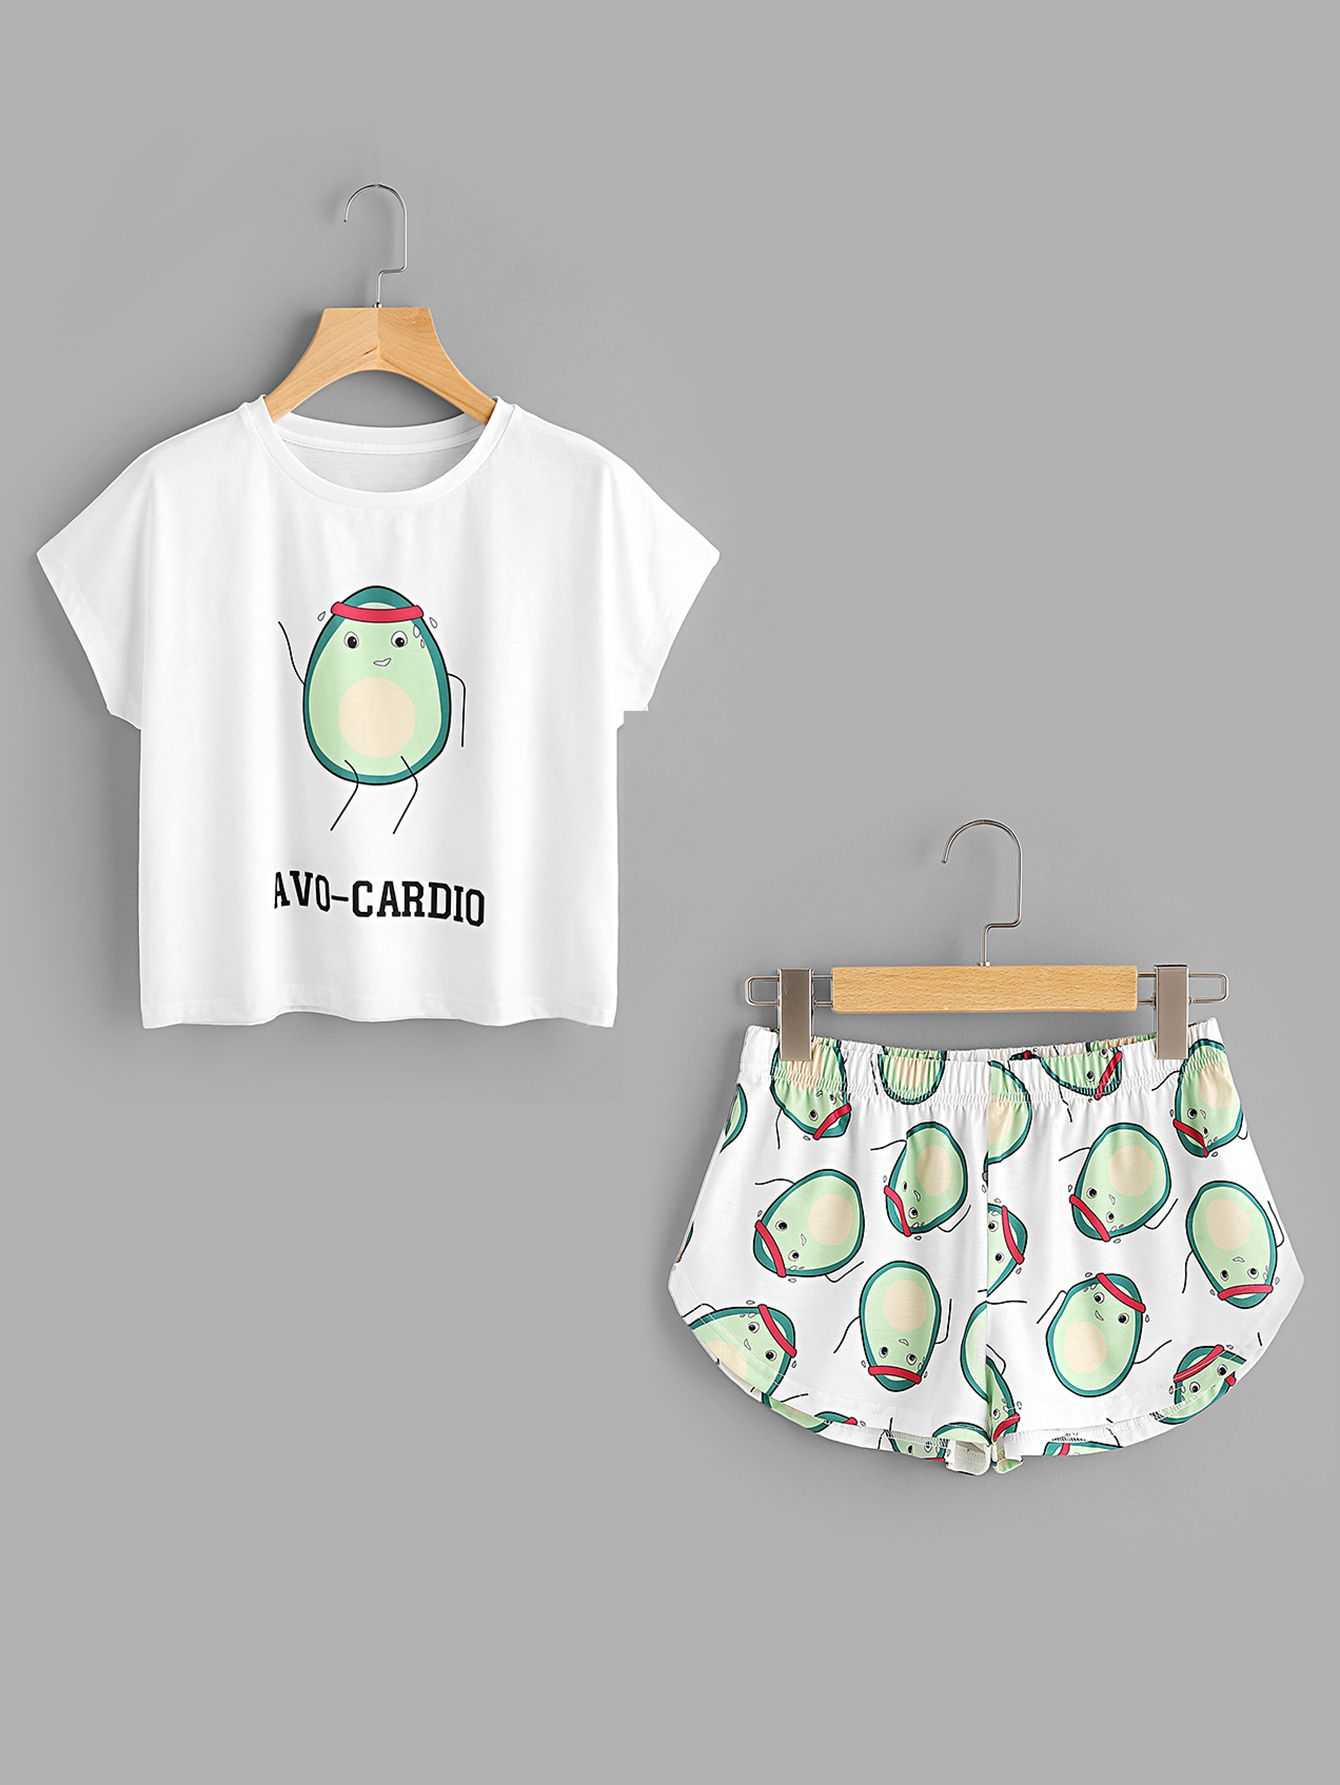 9b633c7662 Shop Cartoon Avocado Print Tee And Shorts Set online. SheIn offers Cartoon  Avocado Print Tee And Shorts Set & more to fit your fashionable needs.